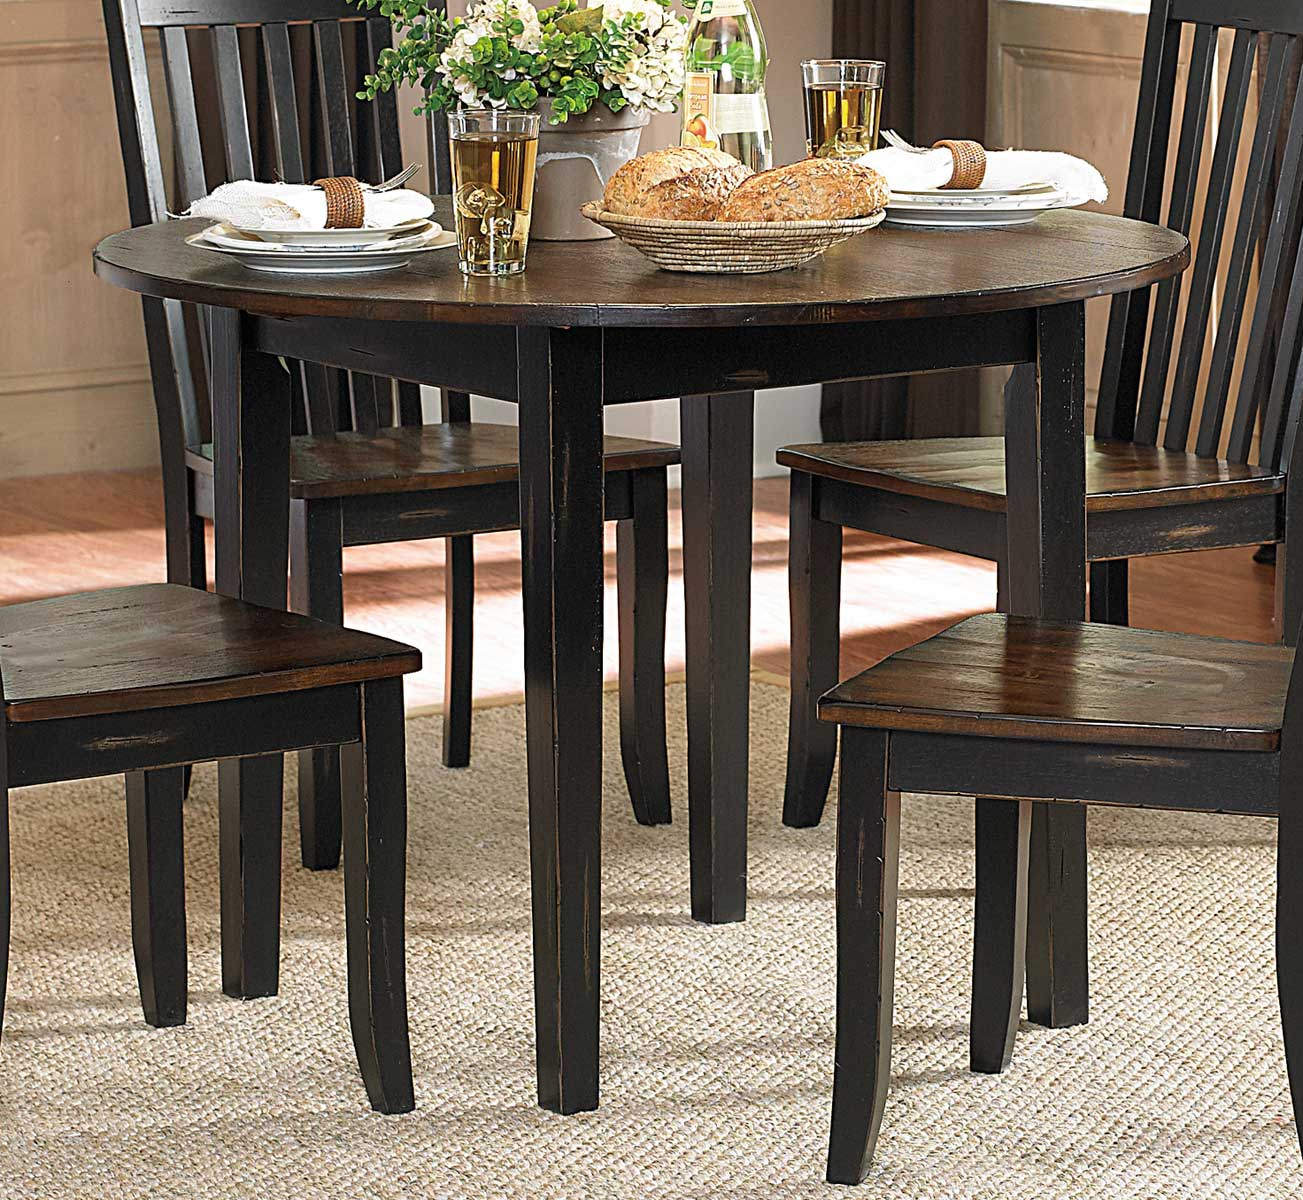 Homelegance three falls round dining table with drop leaf for Black dining table with leaf